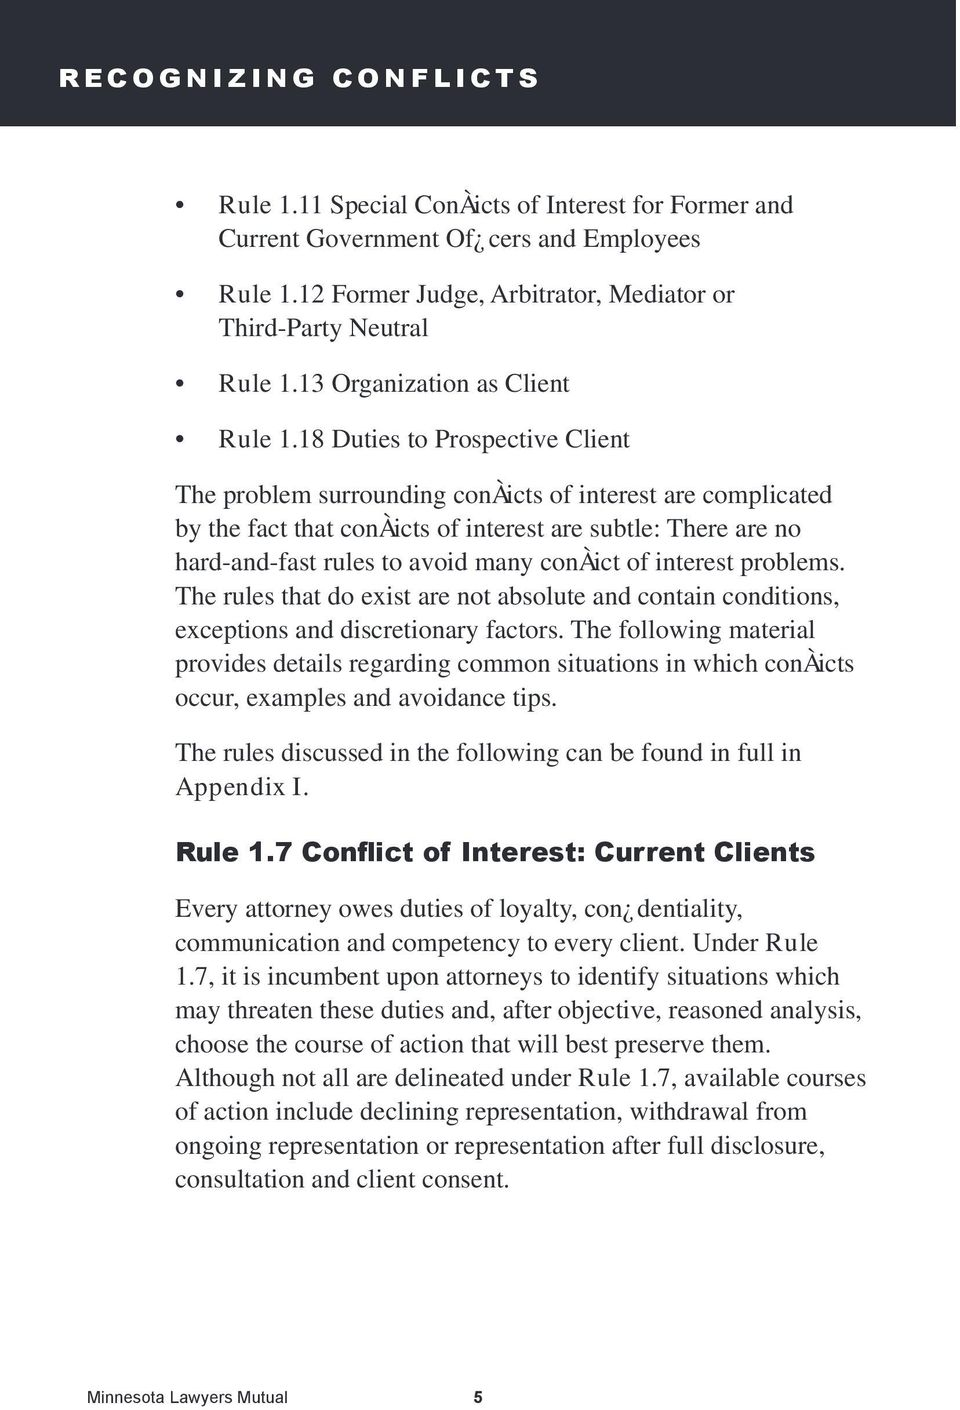 18 Duties to Prospective Client The problem surrounding conàicts of interest are complicated by the fact that conàicts of interest are subtle: There are no hard-and-fast rules to avoid many conàict